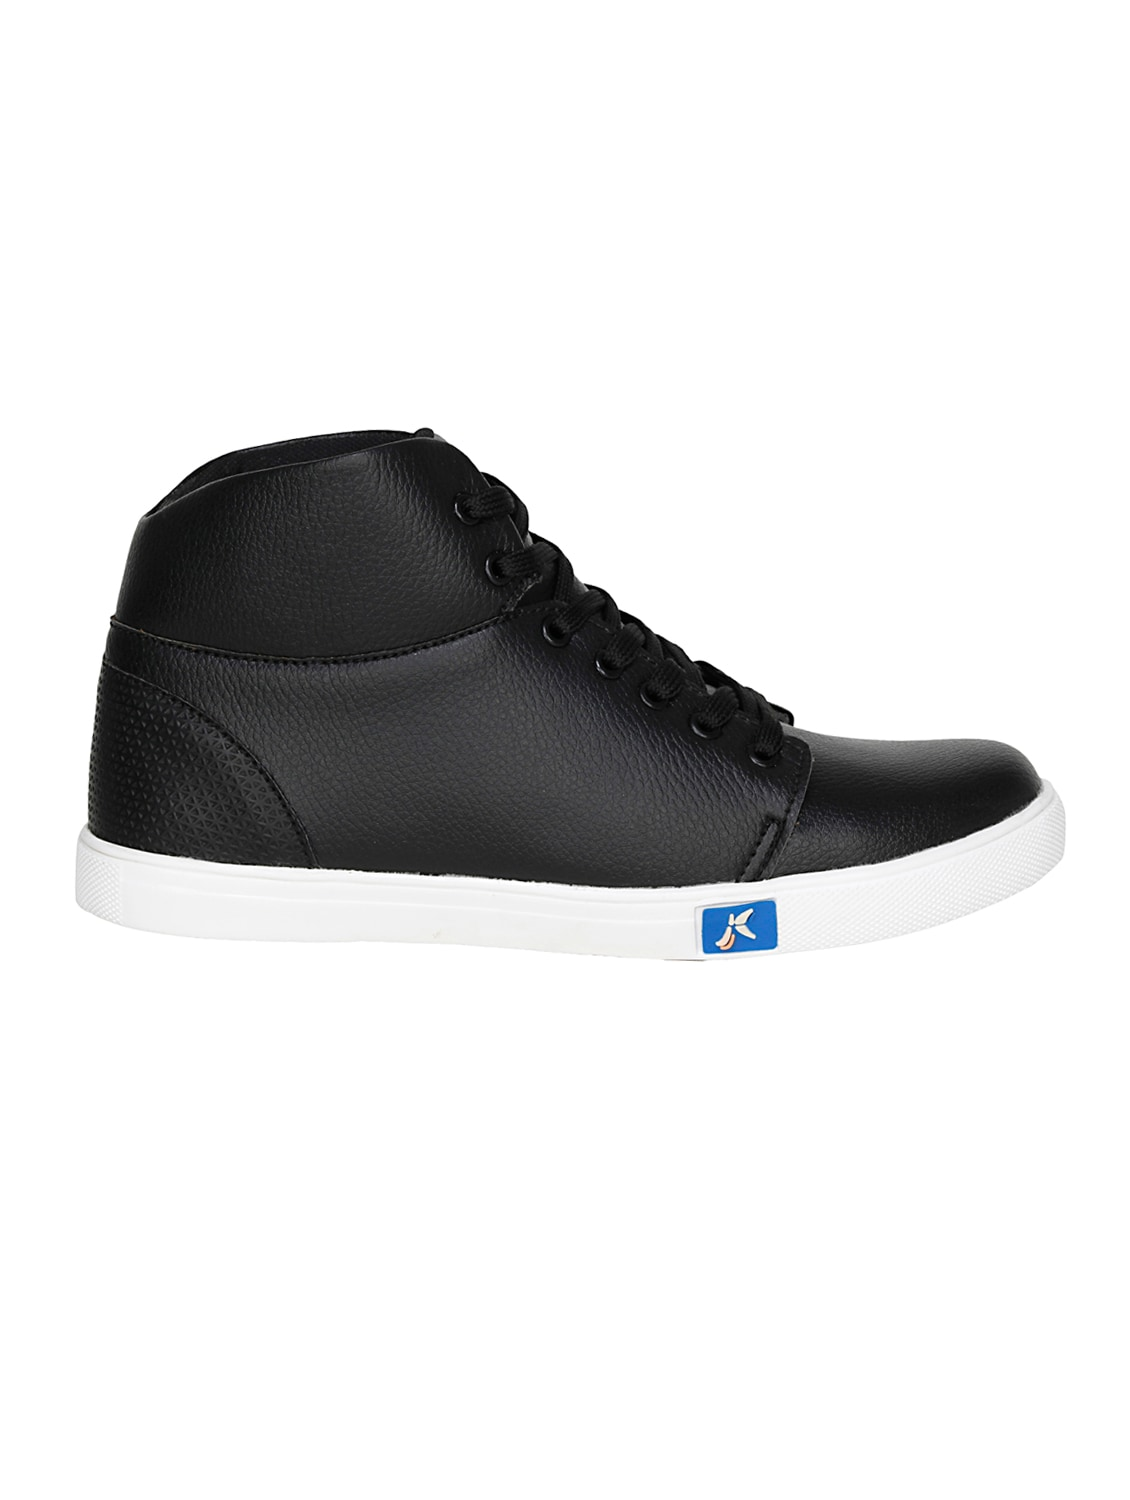 4e72a0c2041a Buy Black Leatherette Lace Up Sneaker for Men from Kraasa for ₹678 at 32%  off